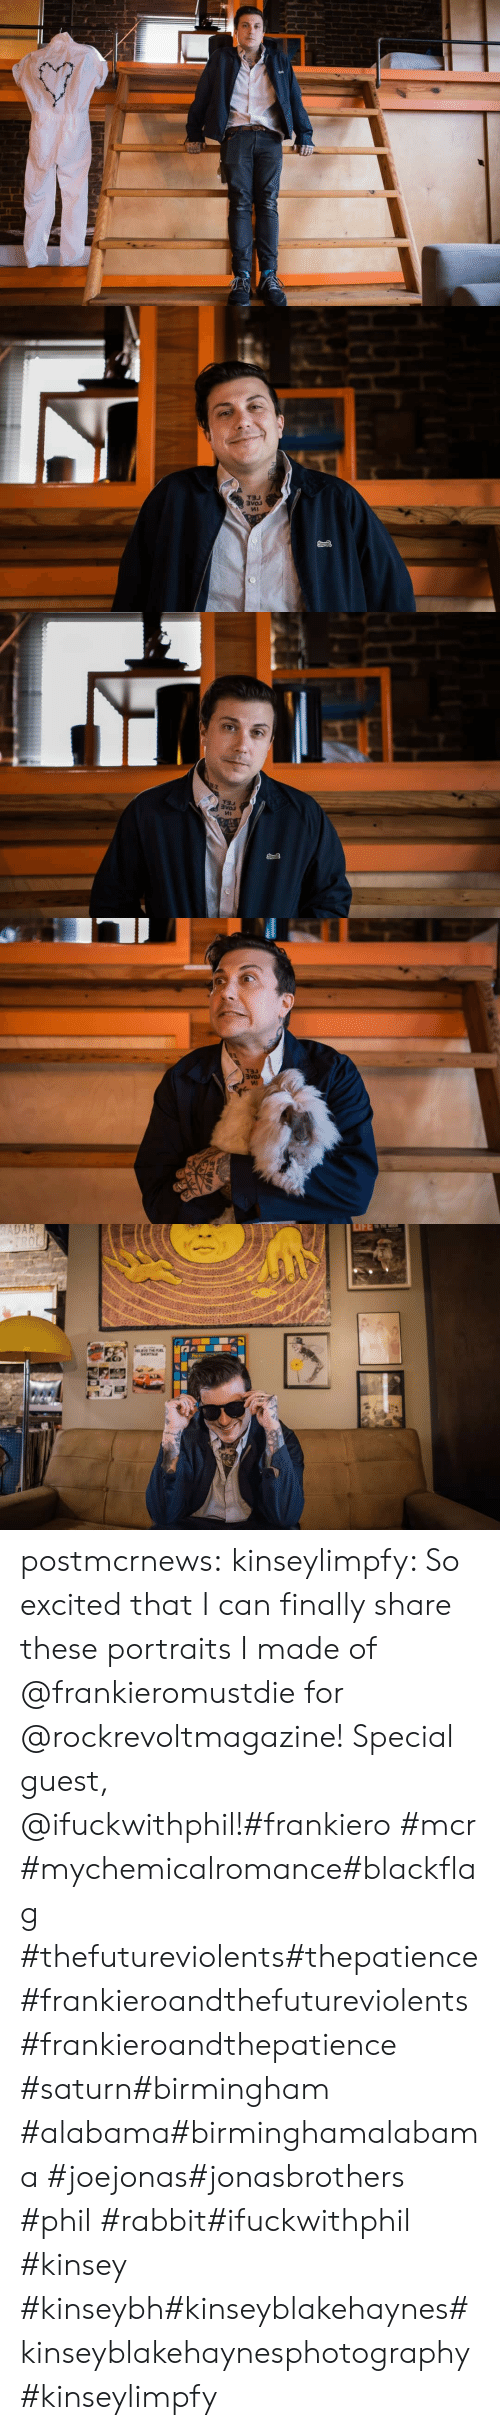 Rabbit: VEE   и   RADAR  TROL  LIFE  SOTACE  TH postmcrnews:  kinseylimpfy: So excited that I can finally share these portraits I made of @frankieromustdie for @rockrevoltmagazine! Special guest, @ifuckwithphil!#frankiero #mcr #mychemicalromance#blackflag #thefutureviolents#thepatience#frankieroandthefutureviolents#frankieroandthepatience #saturn#birmingham #alabama#birminghamalabama #joejonas#jonasbrothers #phil #rabbit#ifuckwithphil #kinsey #kinseybh#kinseyblakehaynes#kinseyblakehaynesphotography#kinseylimpfy